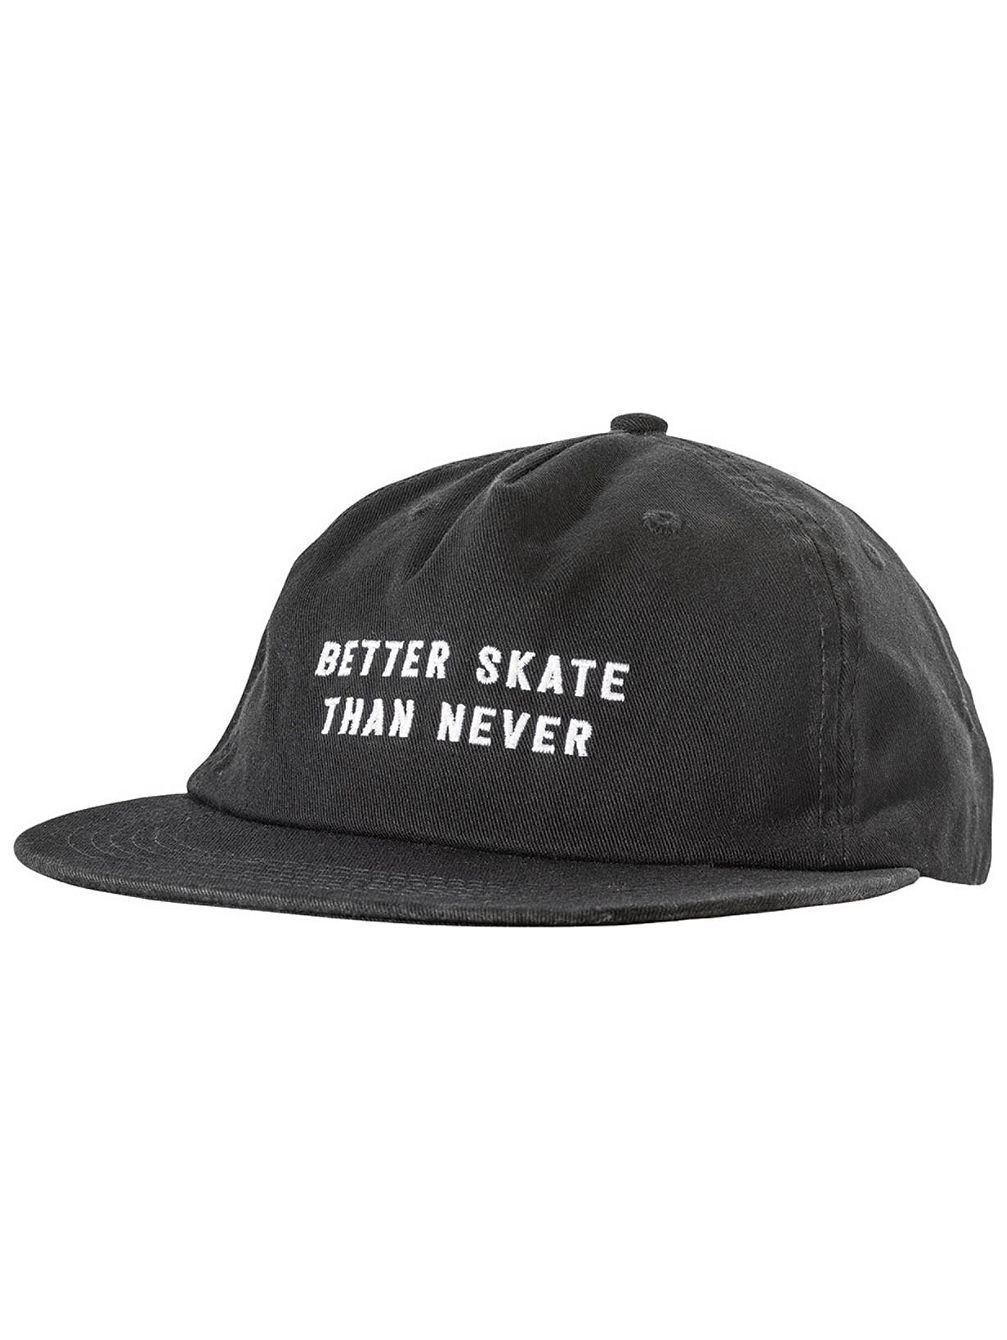 Buy Globe Better Skate Low Rise Cap online at blue-tomato.com 0763e6161a7